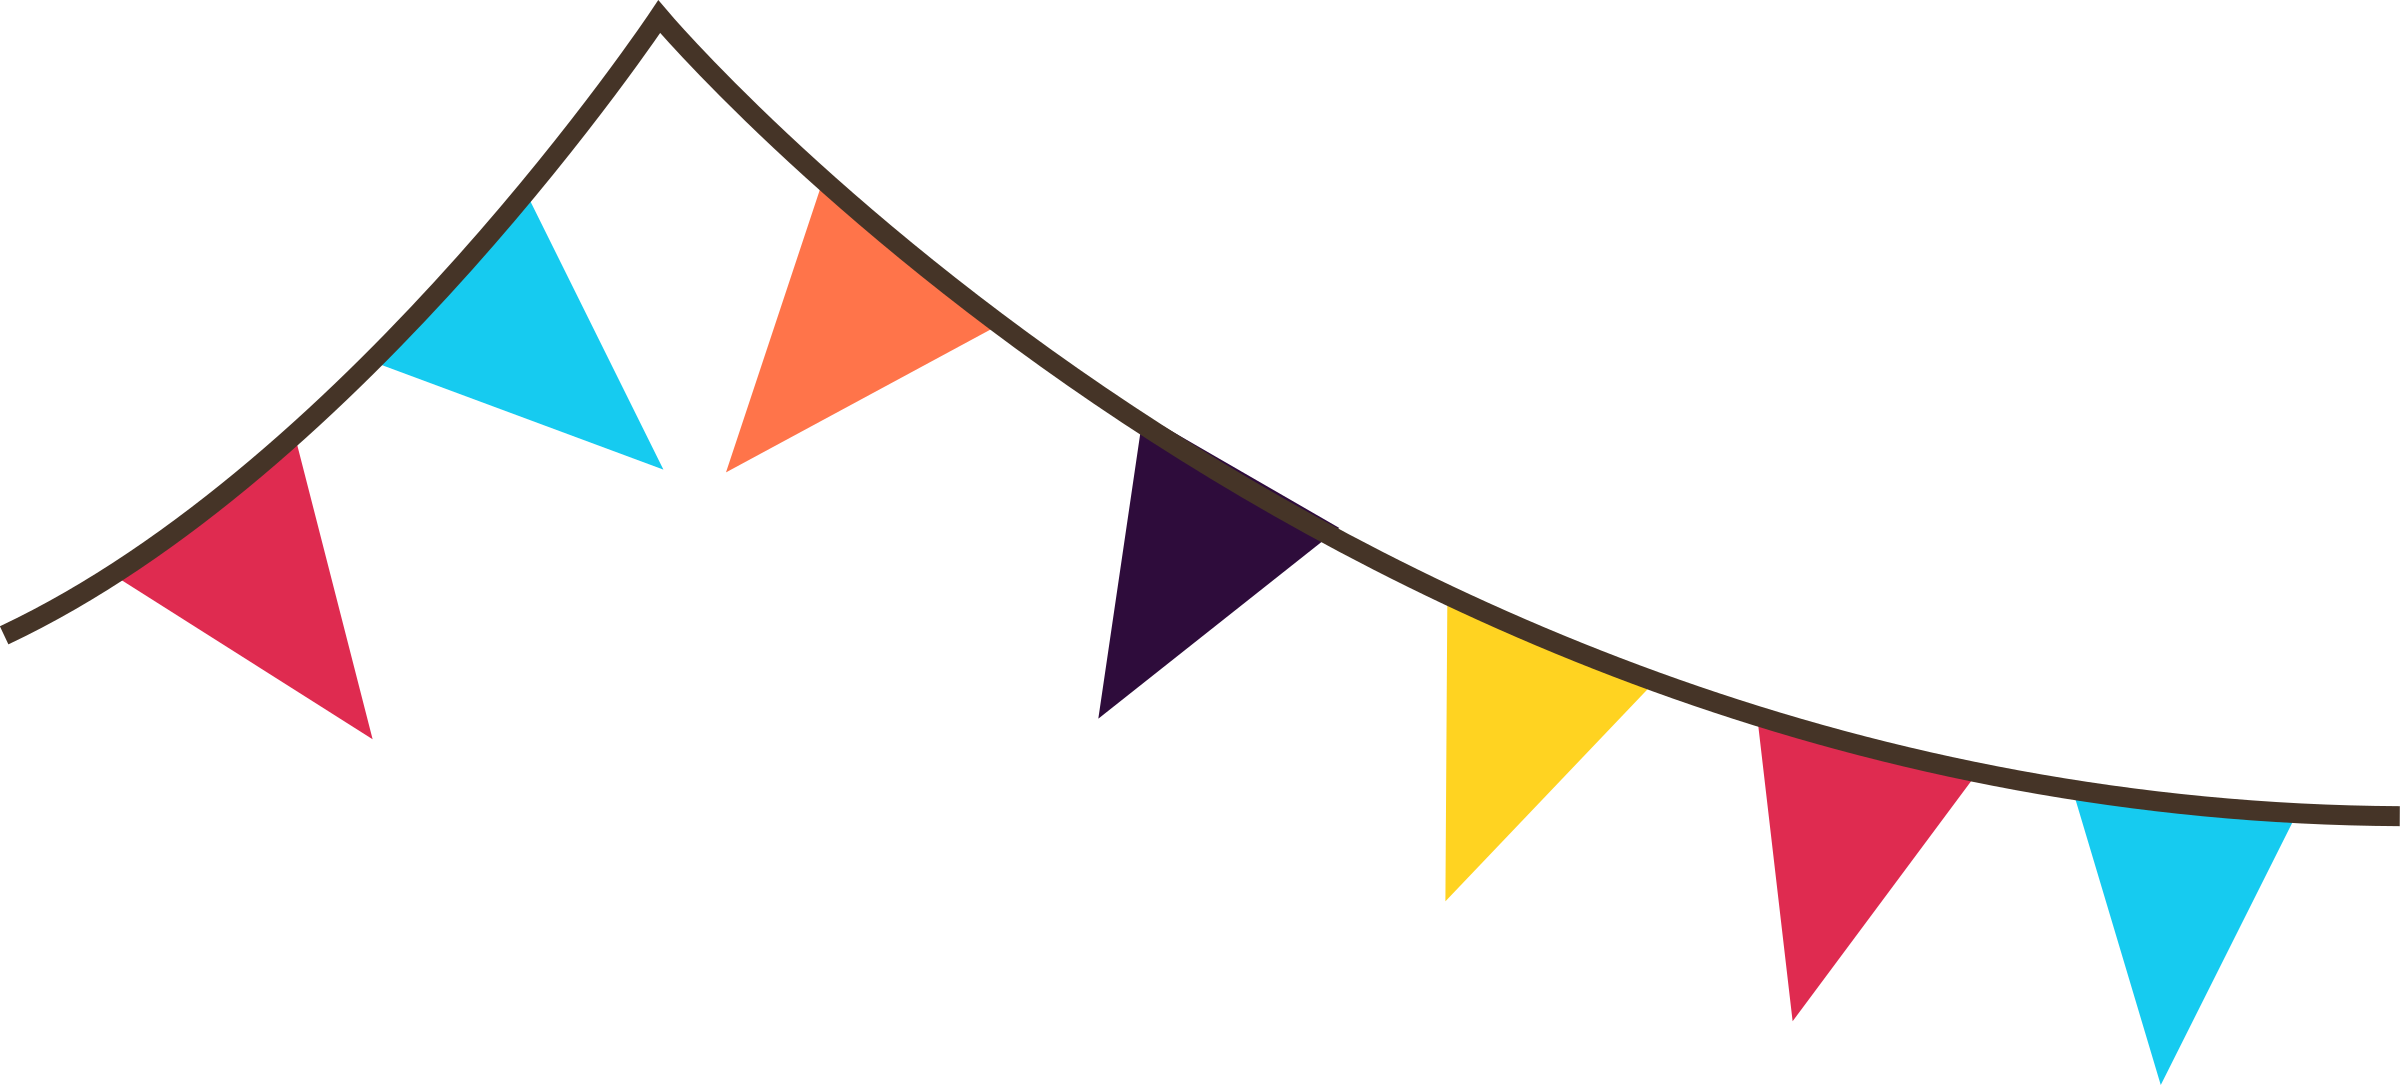 Baseball pennant clipart png picture library stock Bright pastel flag clipart - ClipartFest picture library stock